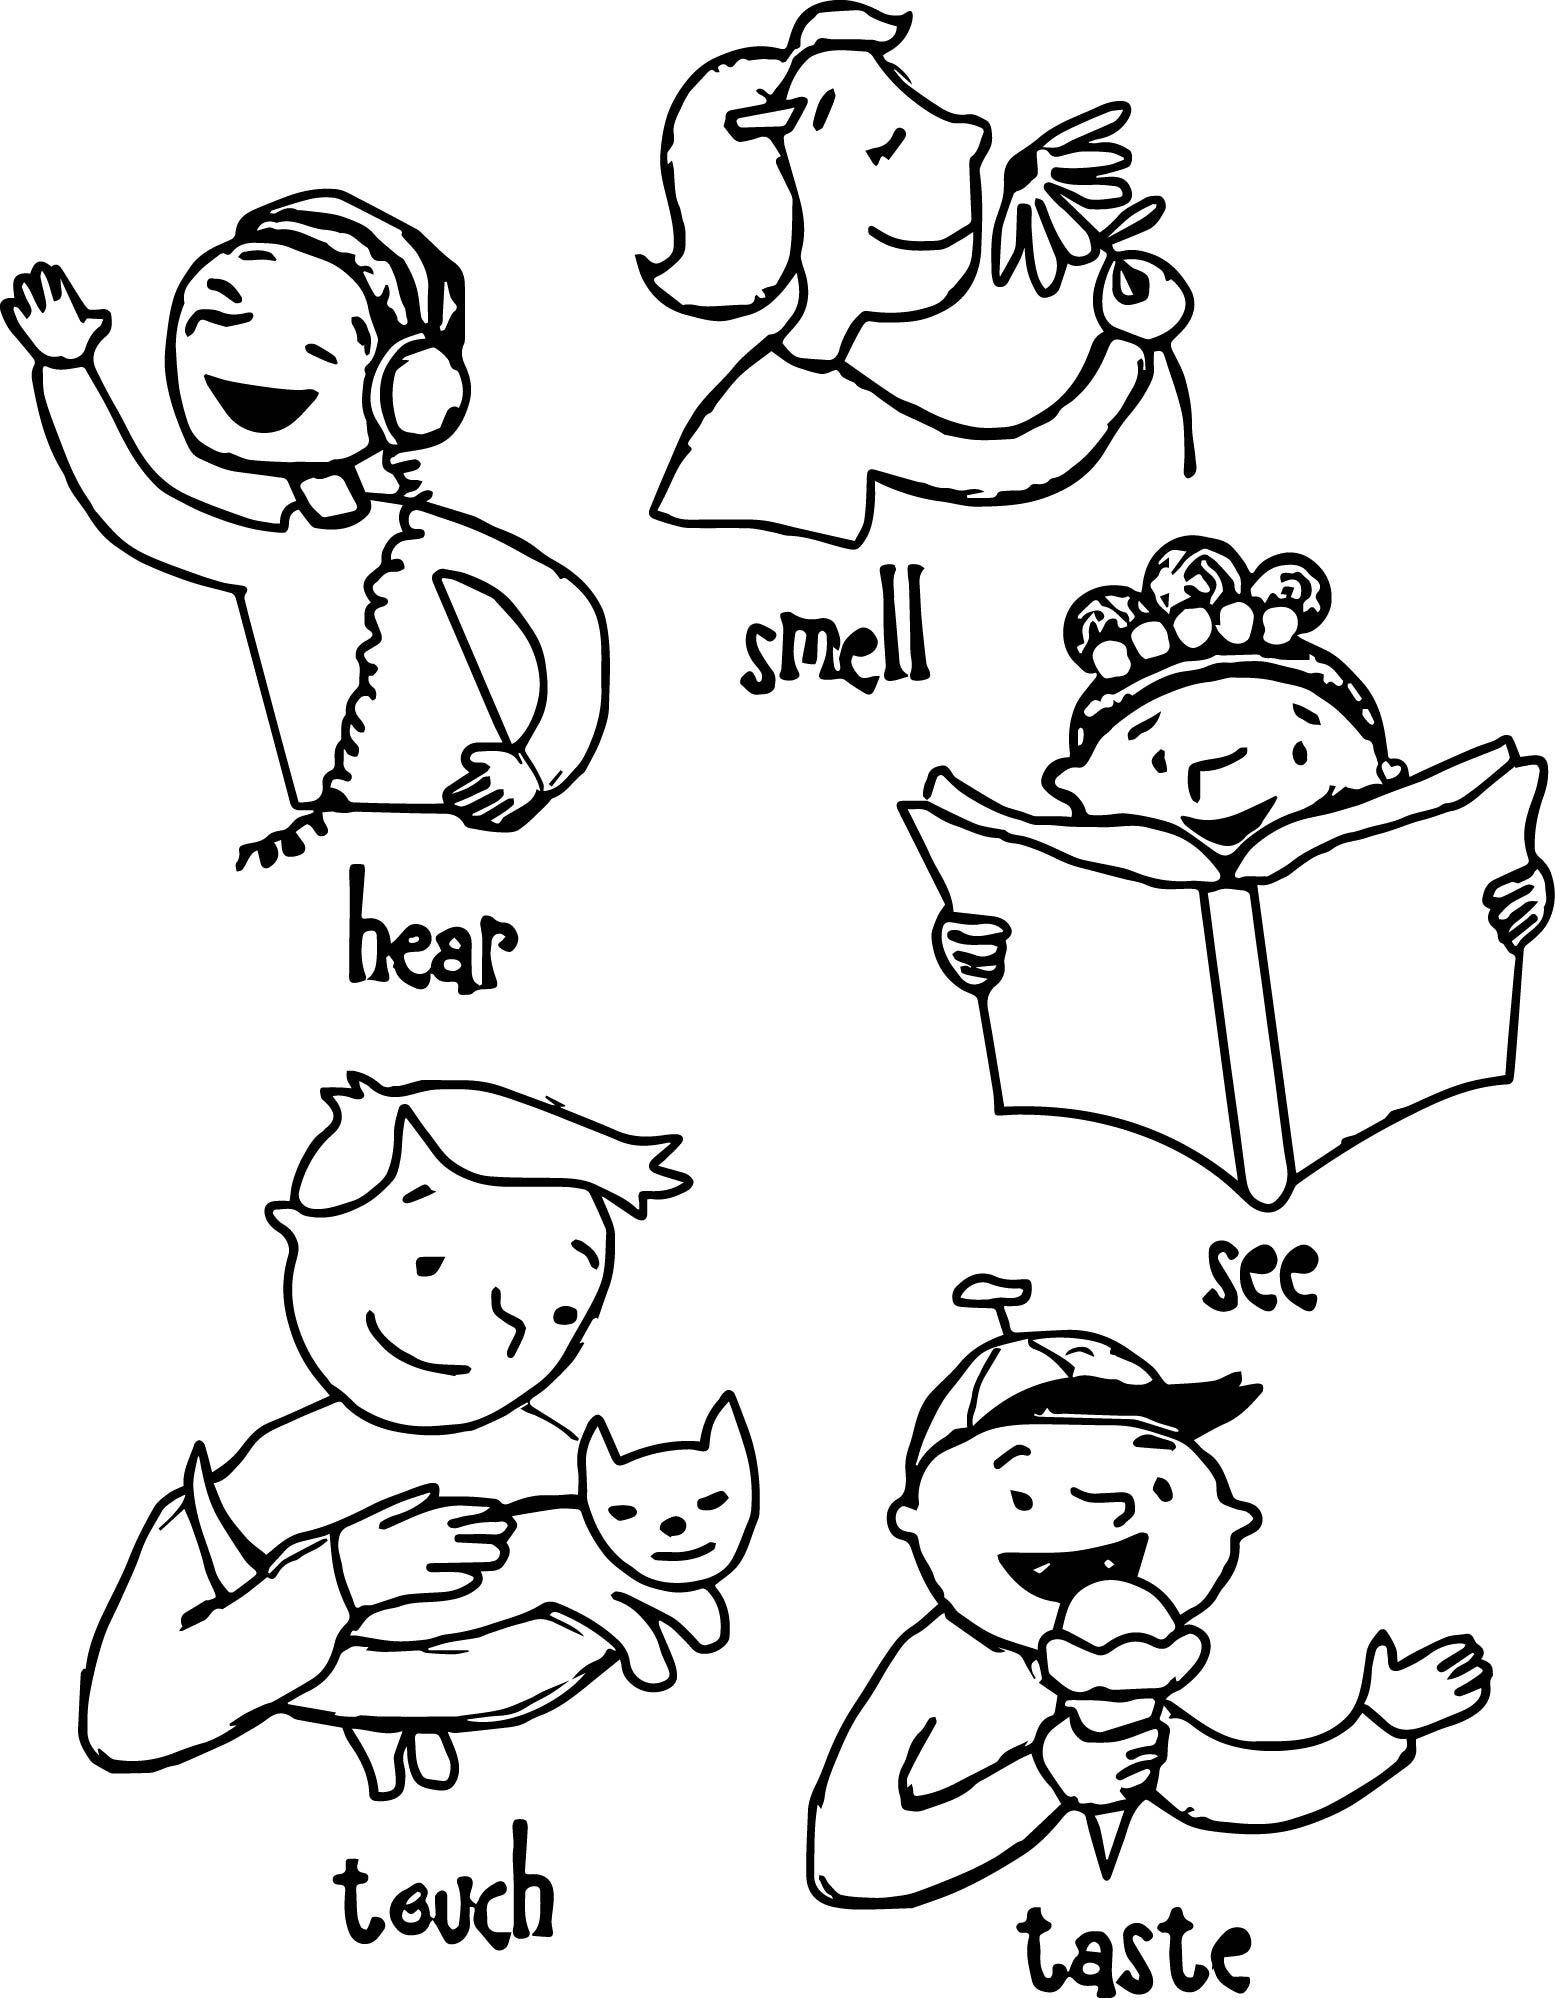 5 Senses Worksheet Preschool 5 Senses Worksheet See